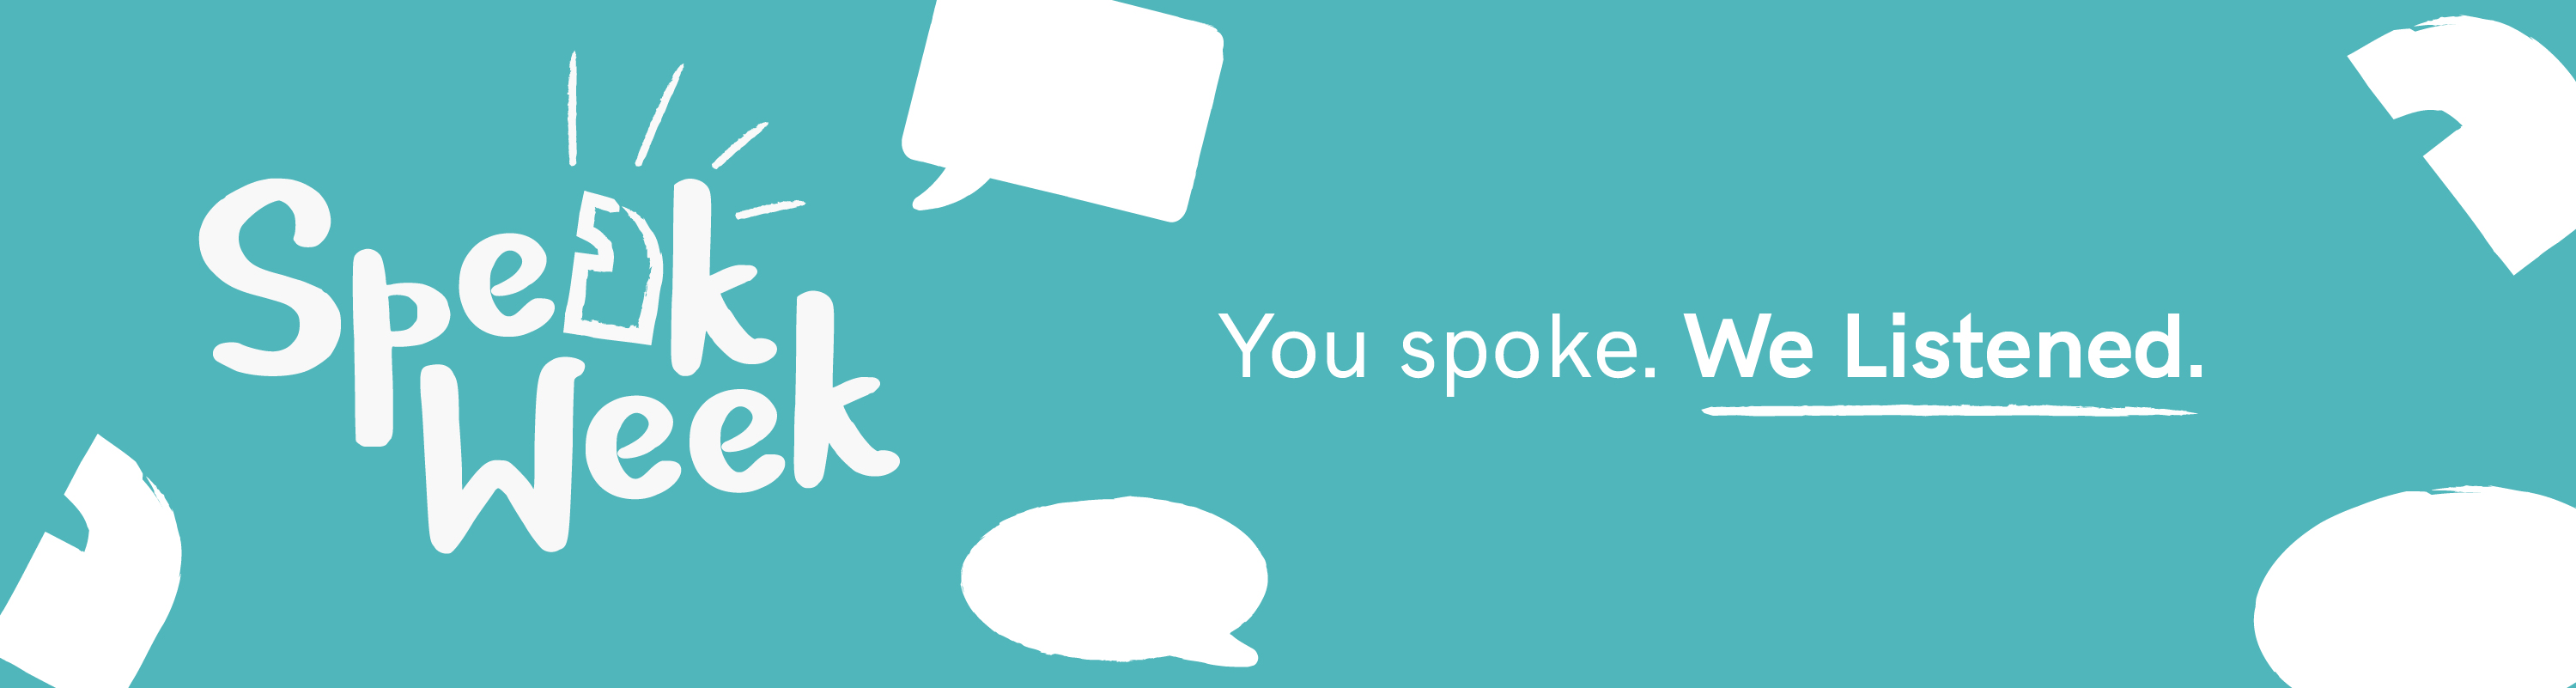 Speak Week. You spoke. We Listened.